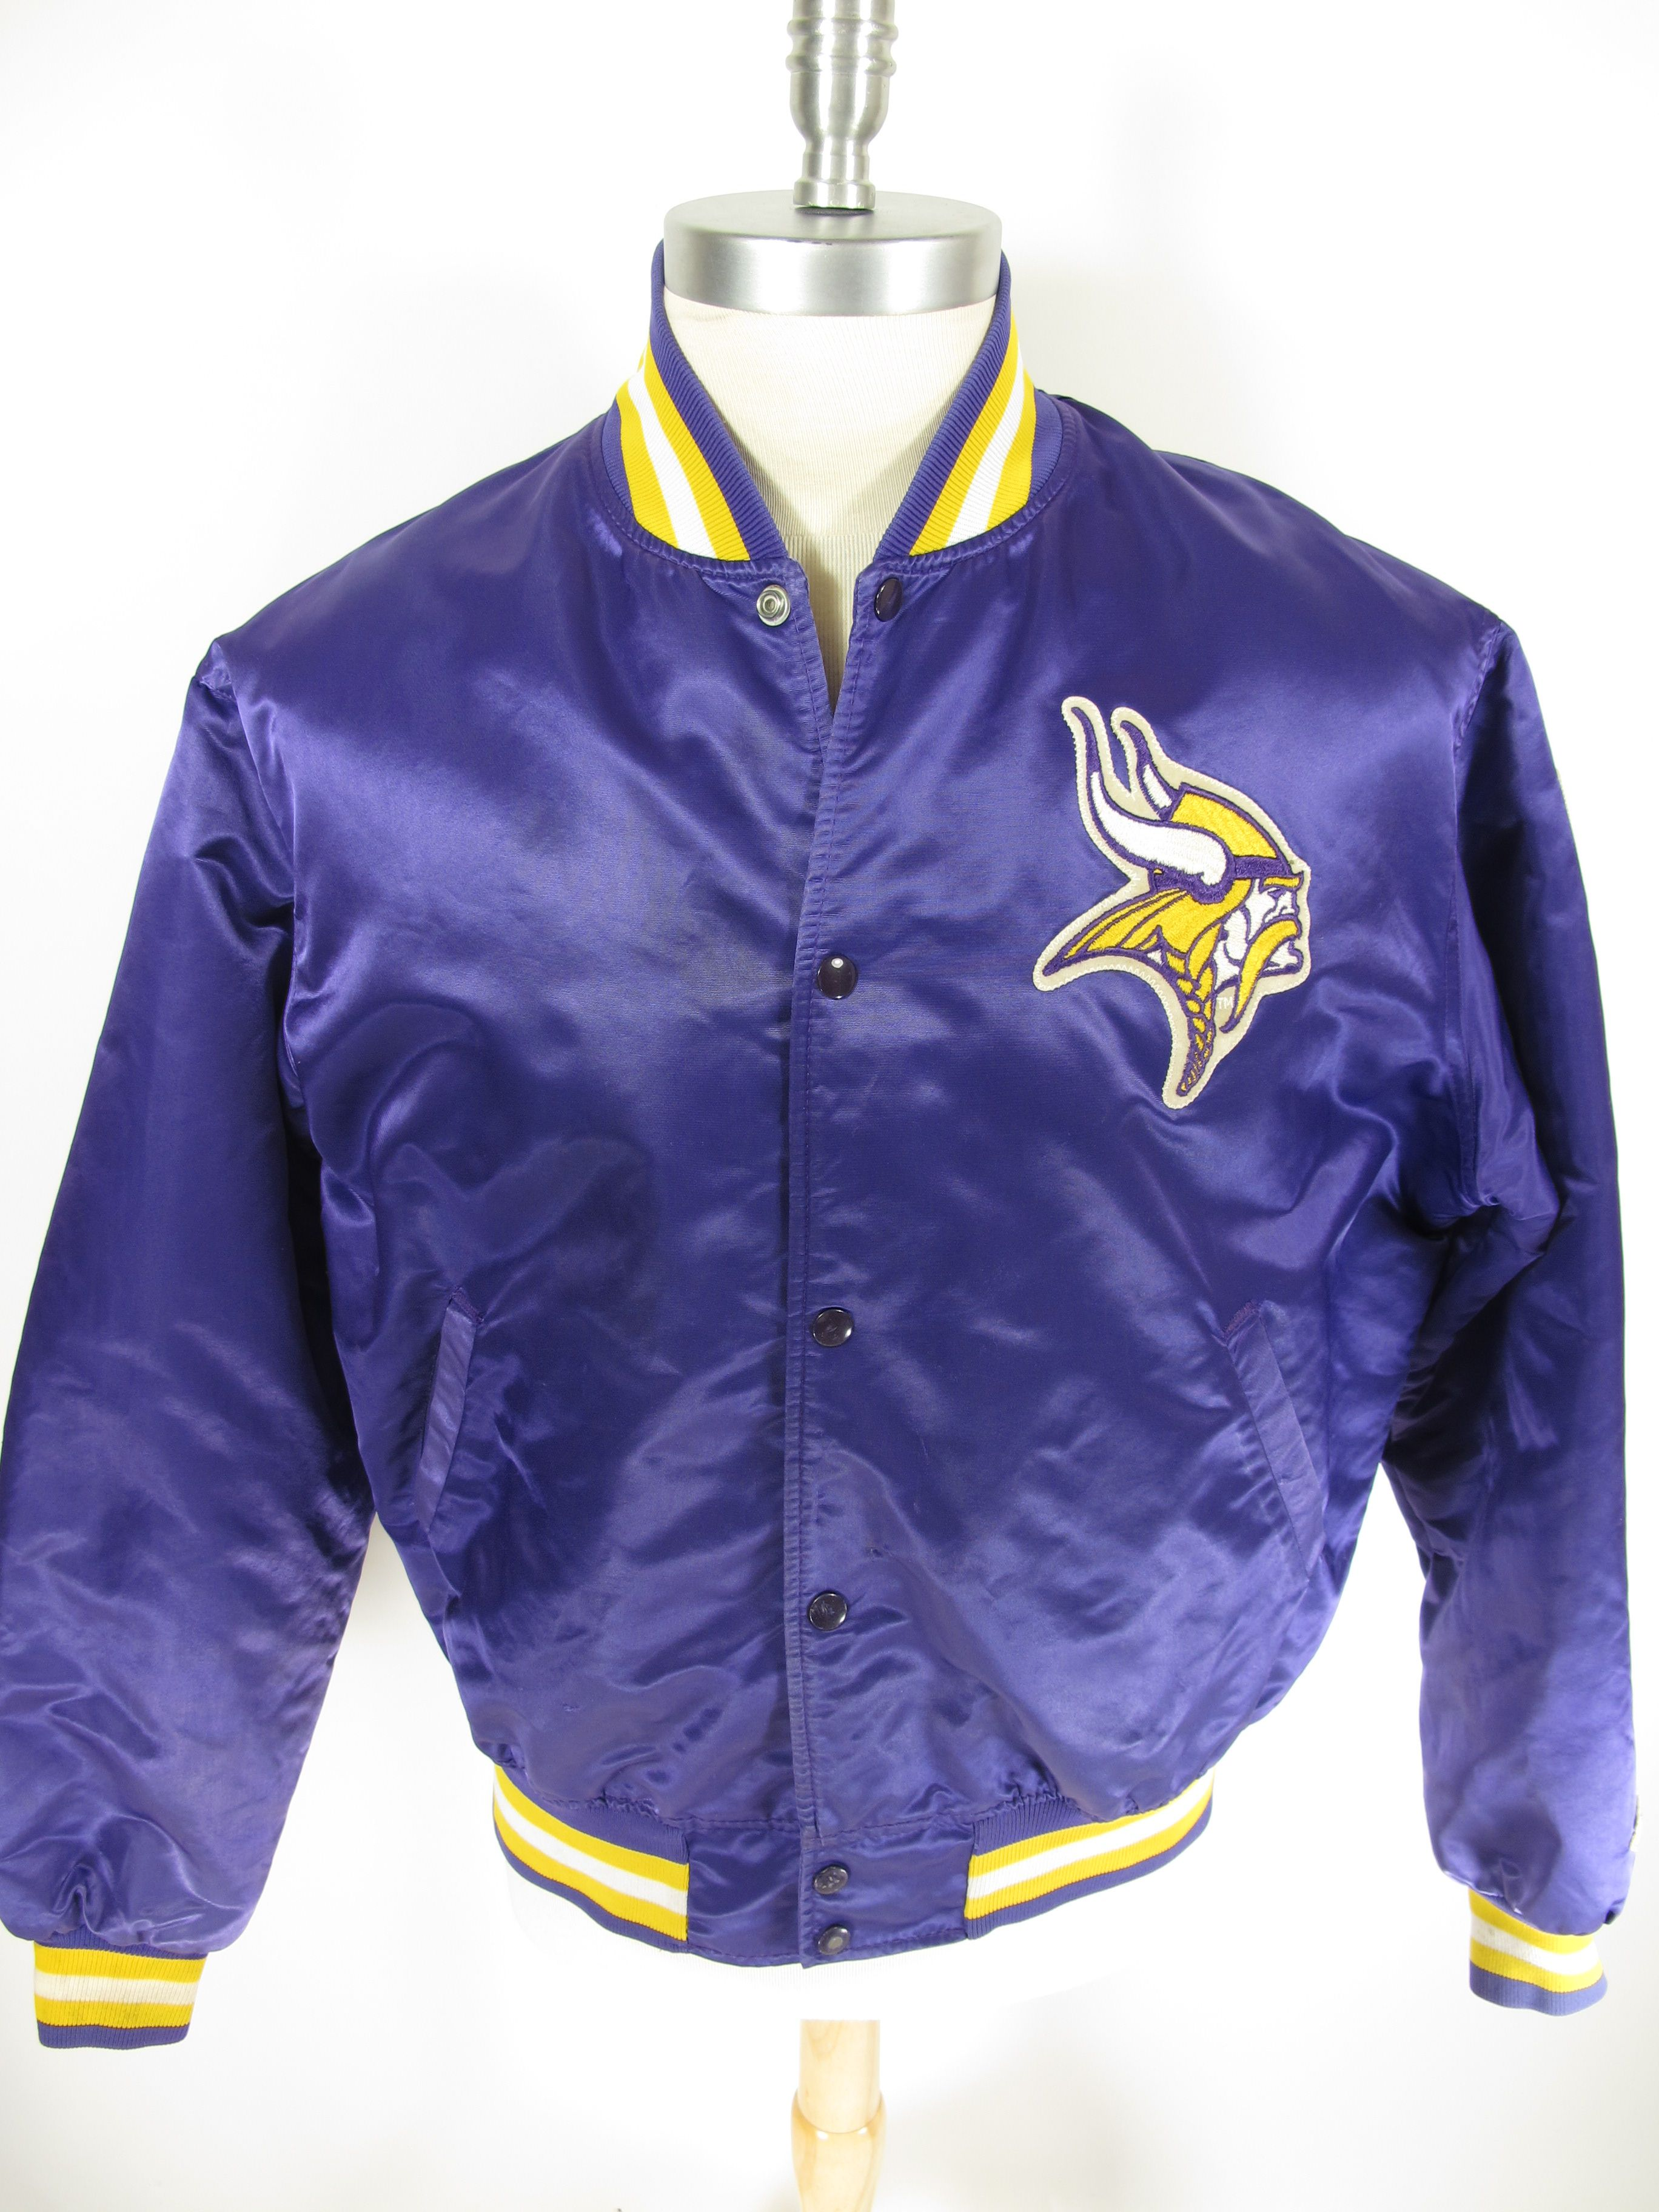 d3a668a3e Vintage 80s Starter NFL Vikings satin jacket. Find more men s and women s authentic  vintage clothing at The Clothing Vault.